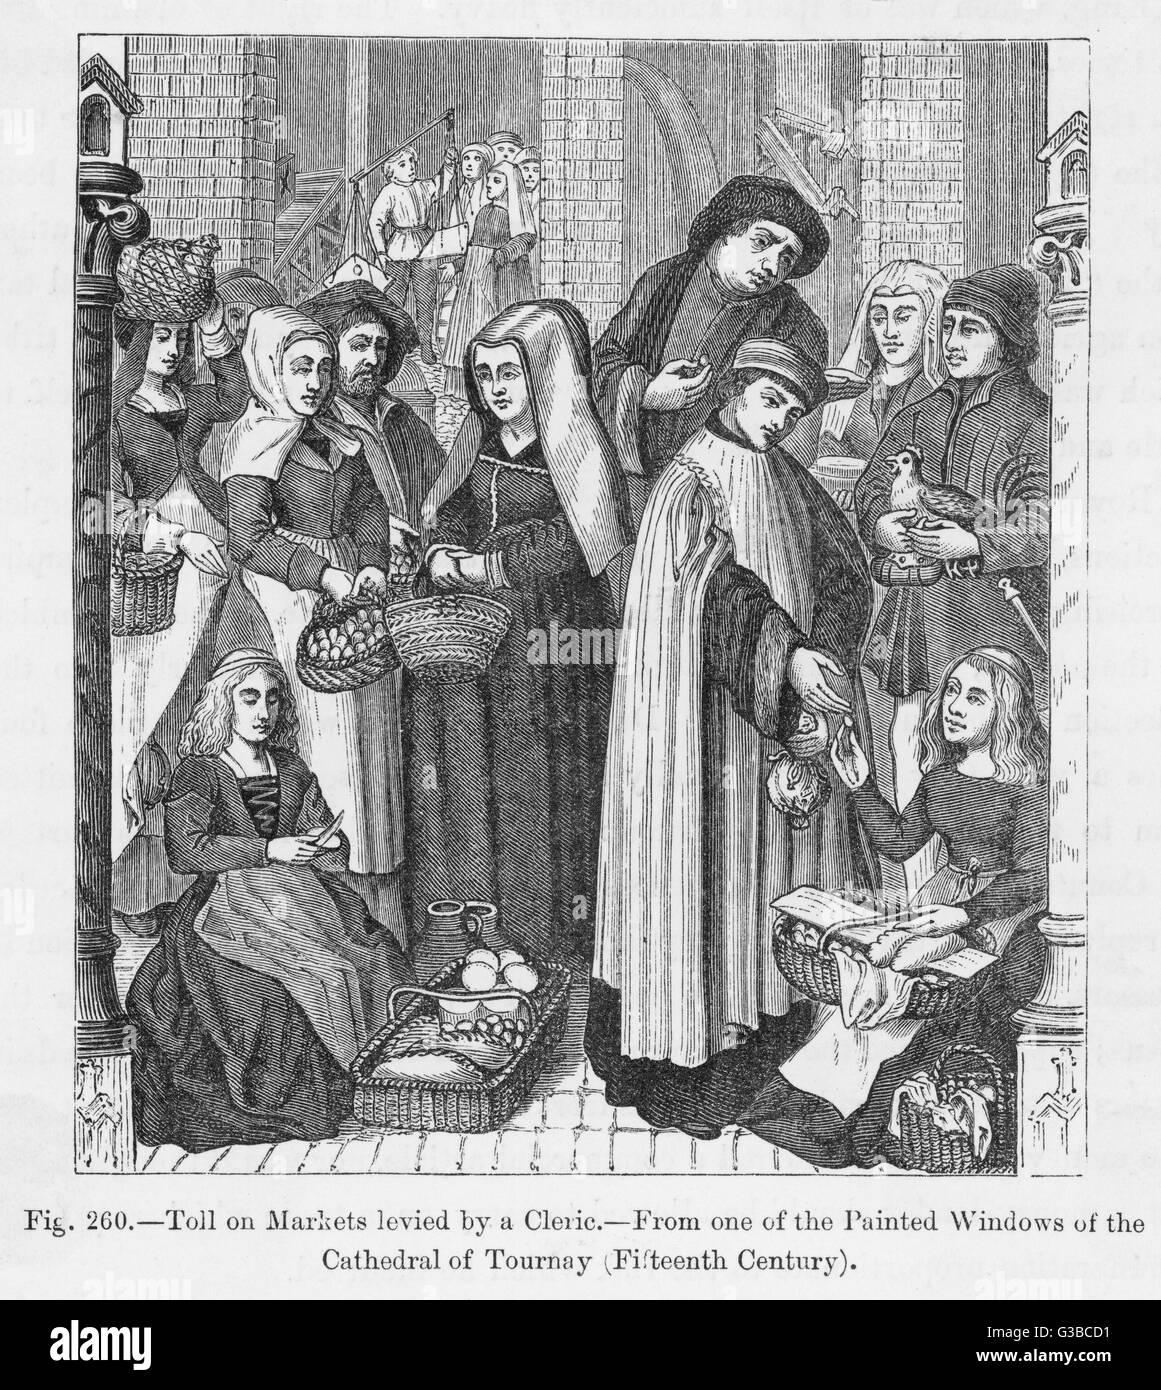 Toll on markets levied by a  cleric         Date: 15th century - Stock Image